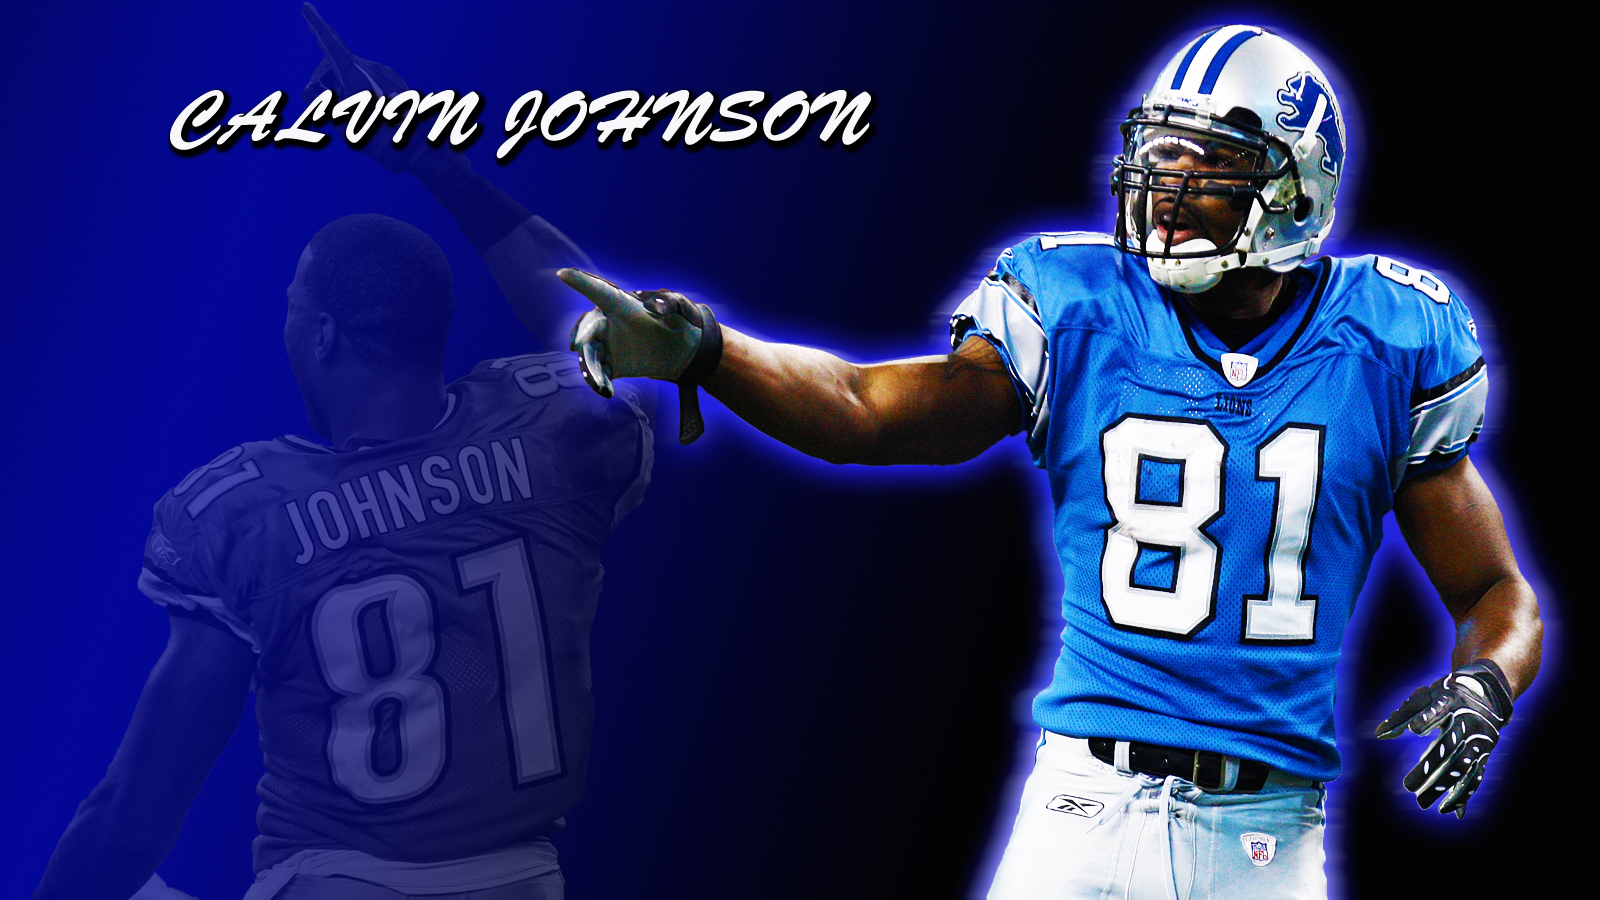 Calvin Johnson Wallpaper | www.pixshark.com - Images ...